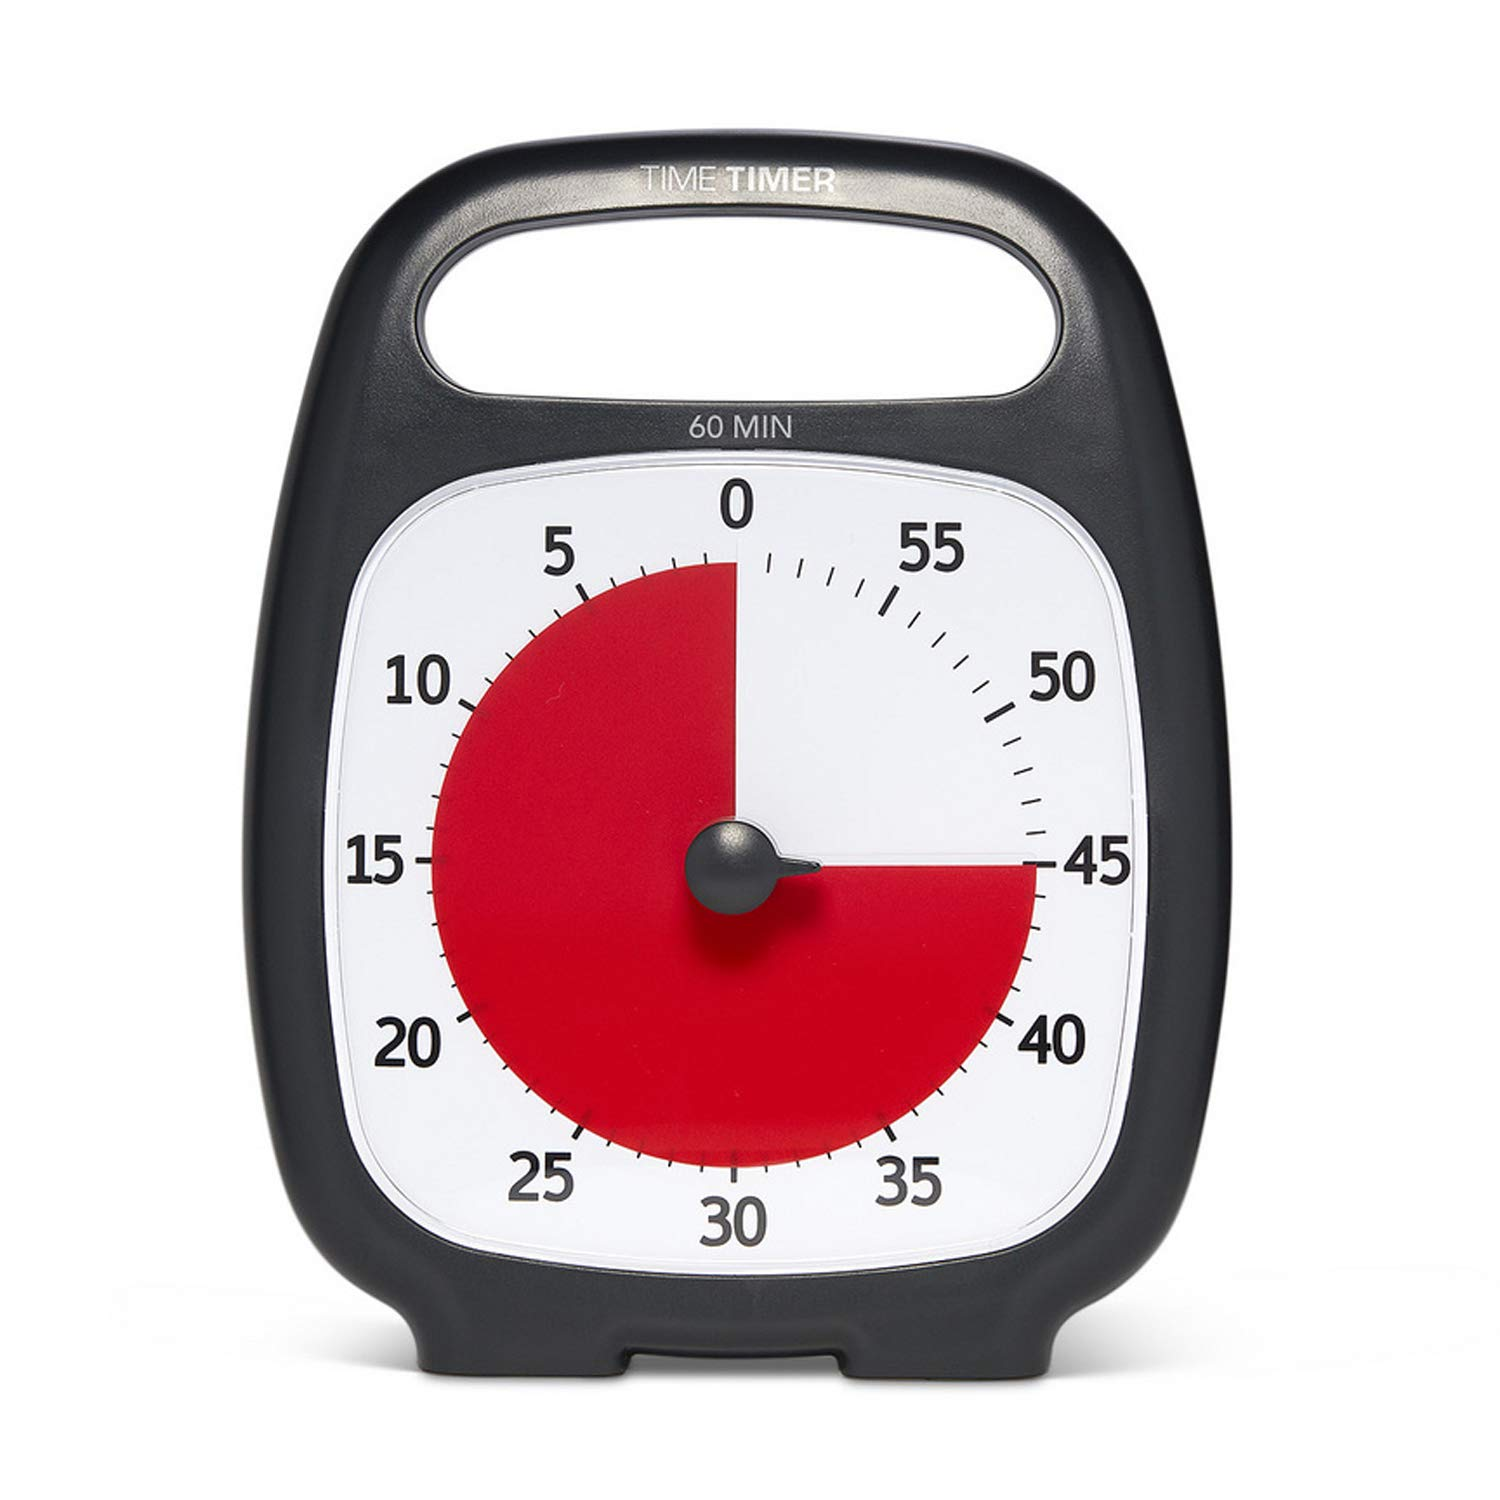 Time Timer PLUS 60 Minute Visual Analog Timer (Charcoal); Optional Alert (Volume-Control Dial); Silent Operation (No Ticking); Time Management Tool by Time Timer